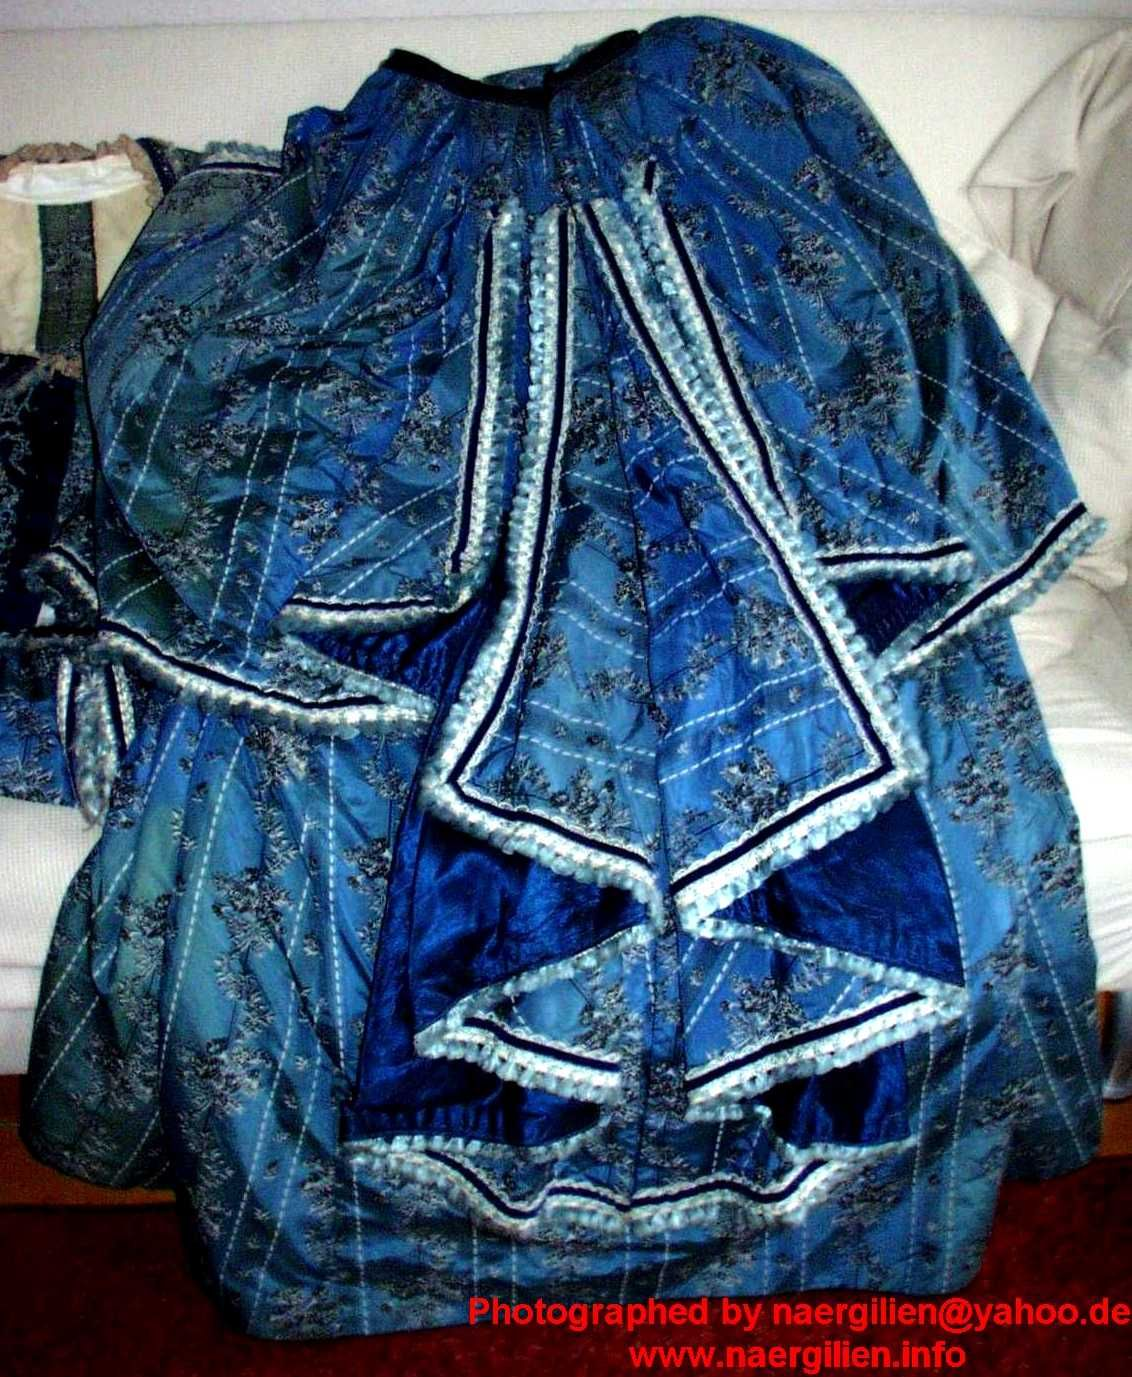 Picture of the complete back of the skirt.